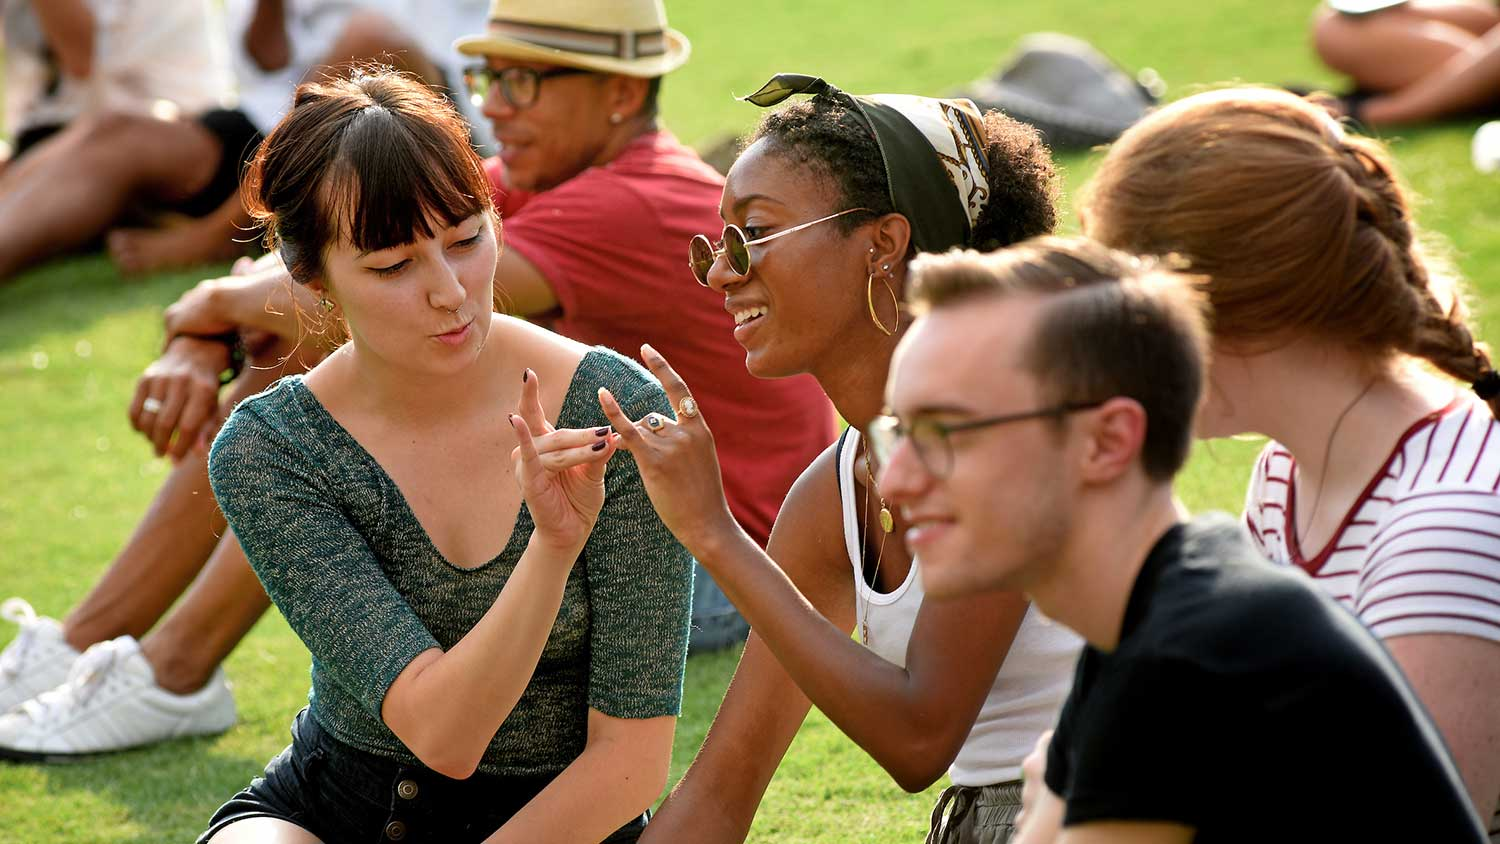 Students Sitting on the Grass - Organizations and Clubs - Parks Recreation and Tourism Management NC State